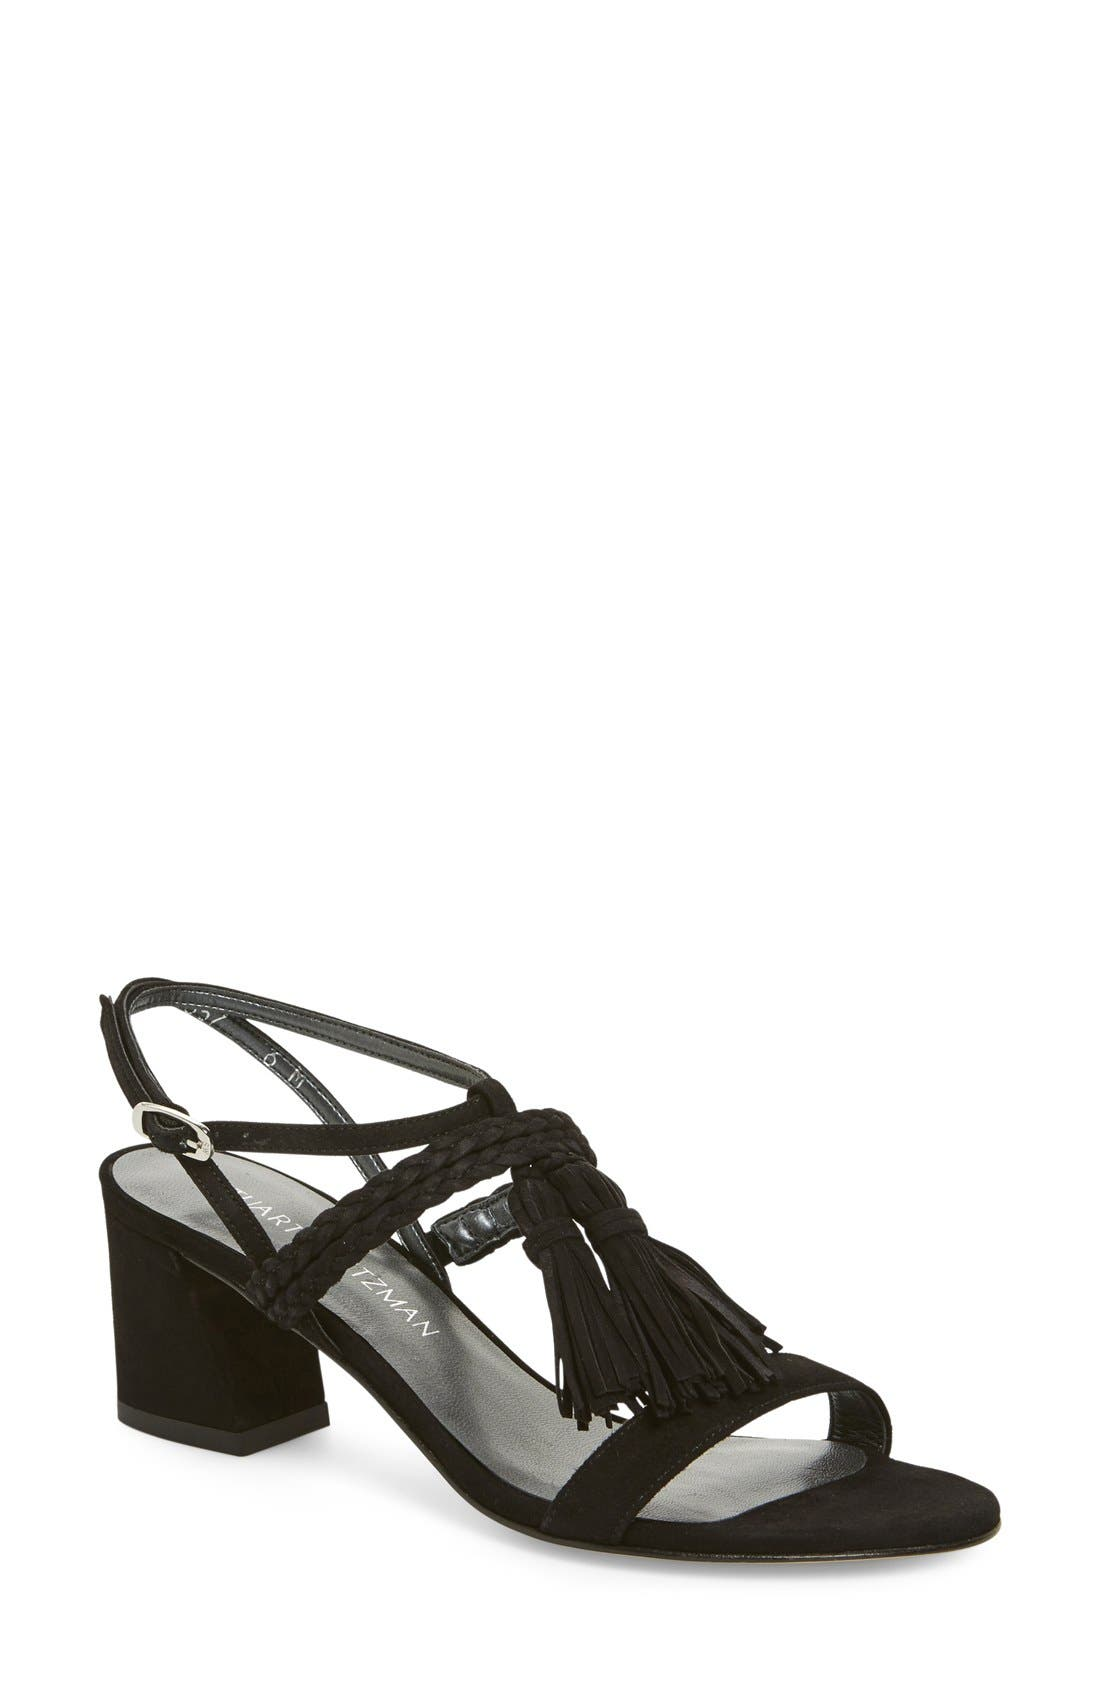 'Tasselmania' Strappy Sandal,                         Main,                         color,